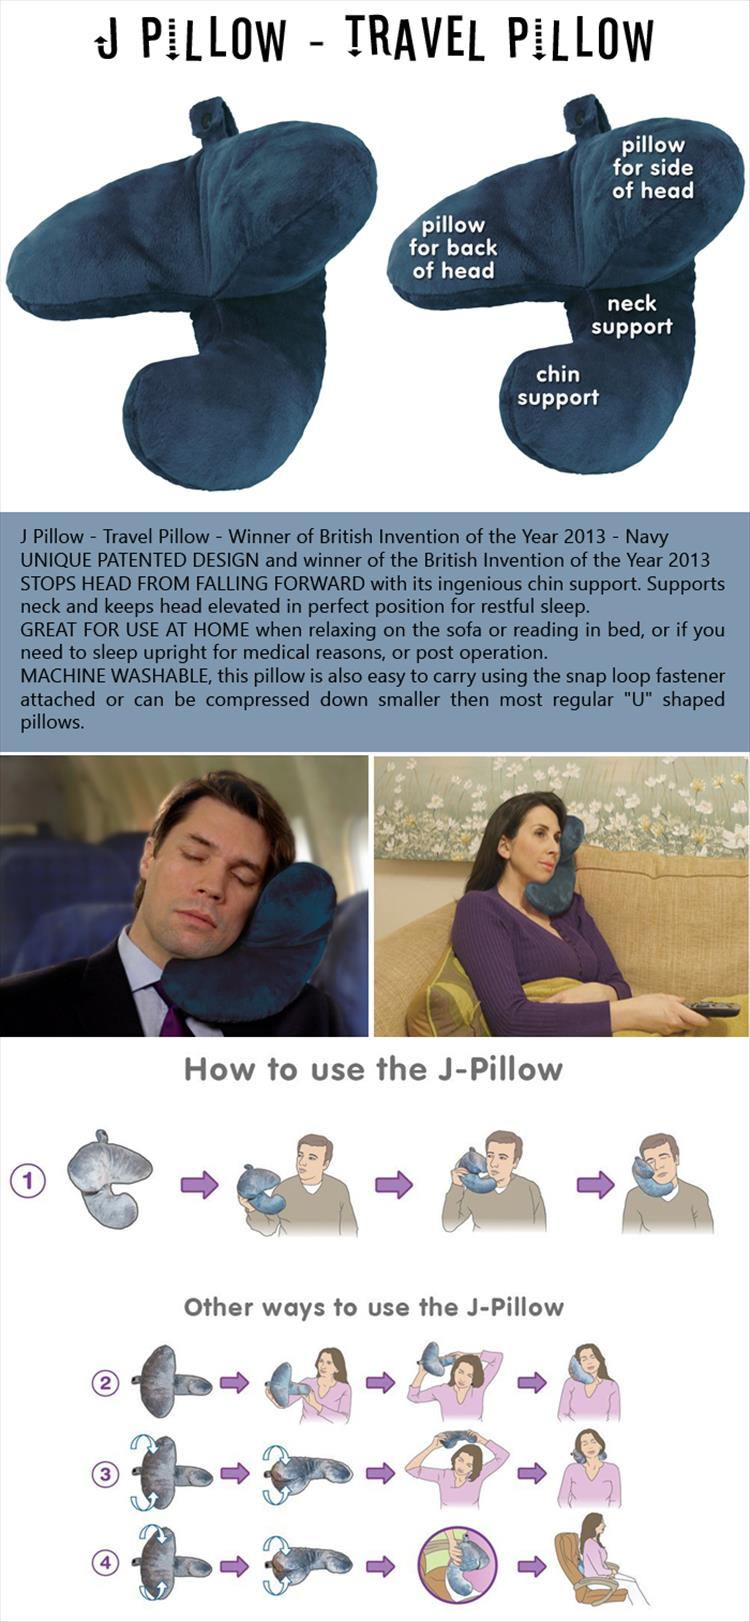 j-pillow-travel-pillow